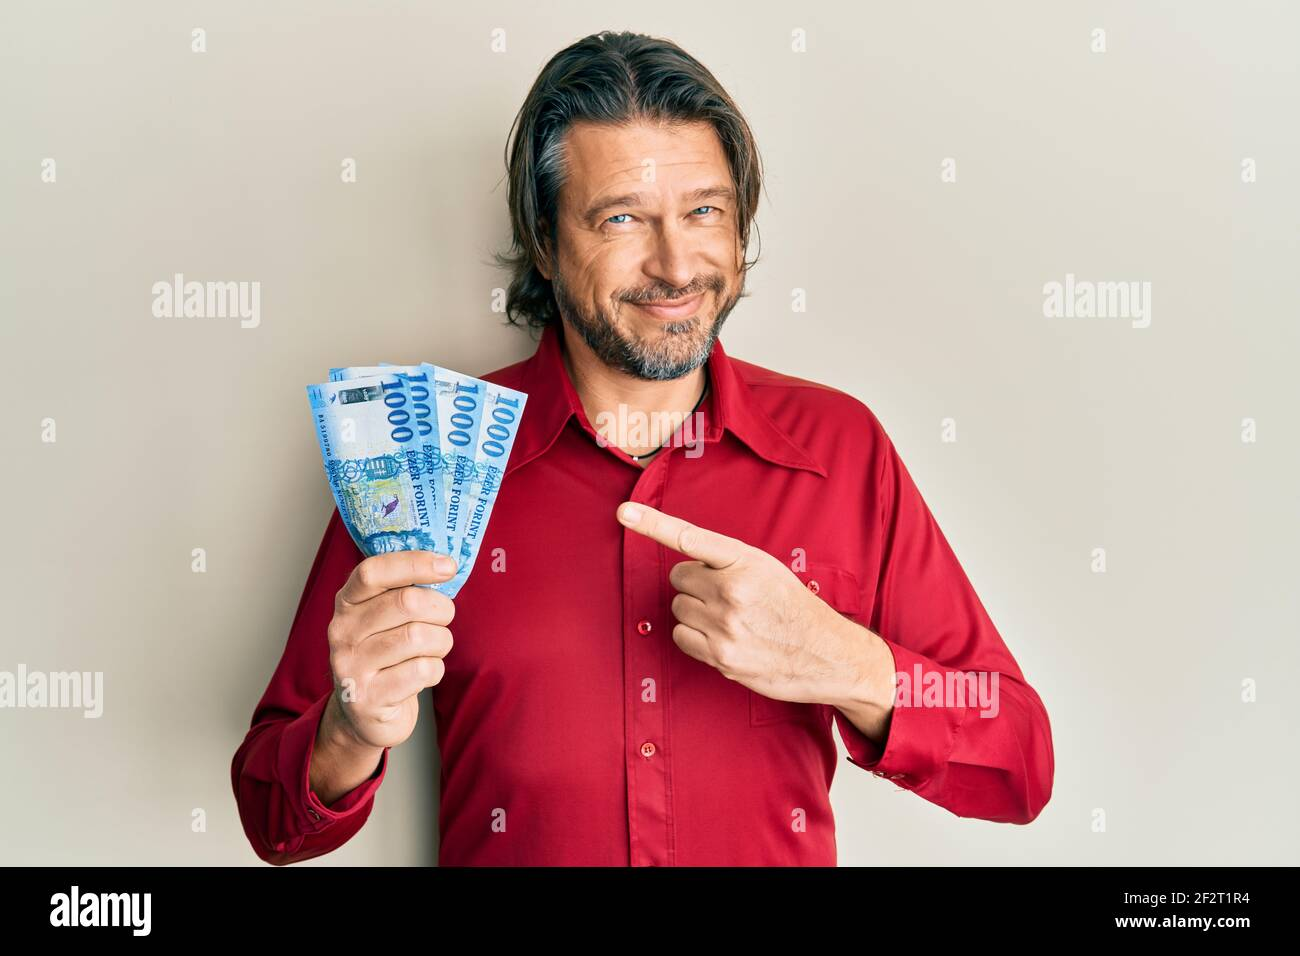 Middle age handsome man holding 1000 hungarian forint banknotes smiling happy pointing with hand and finger Stock Photo